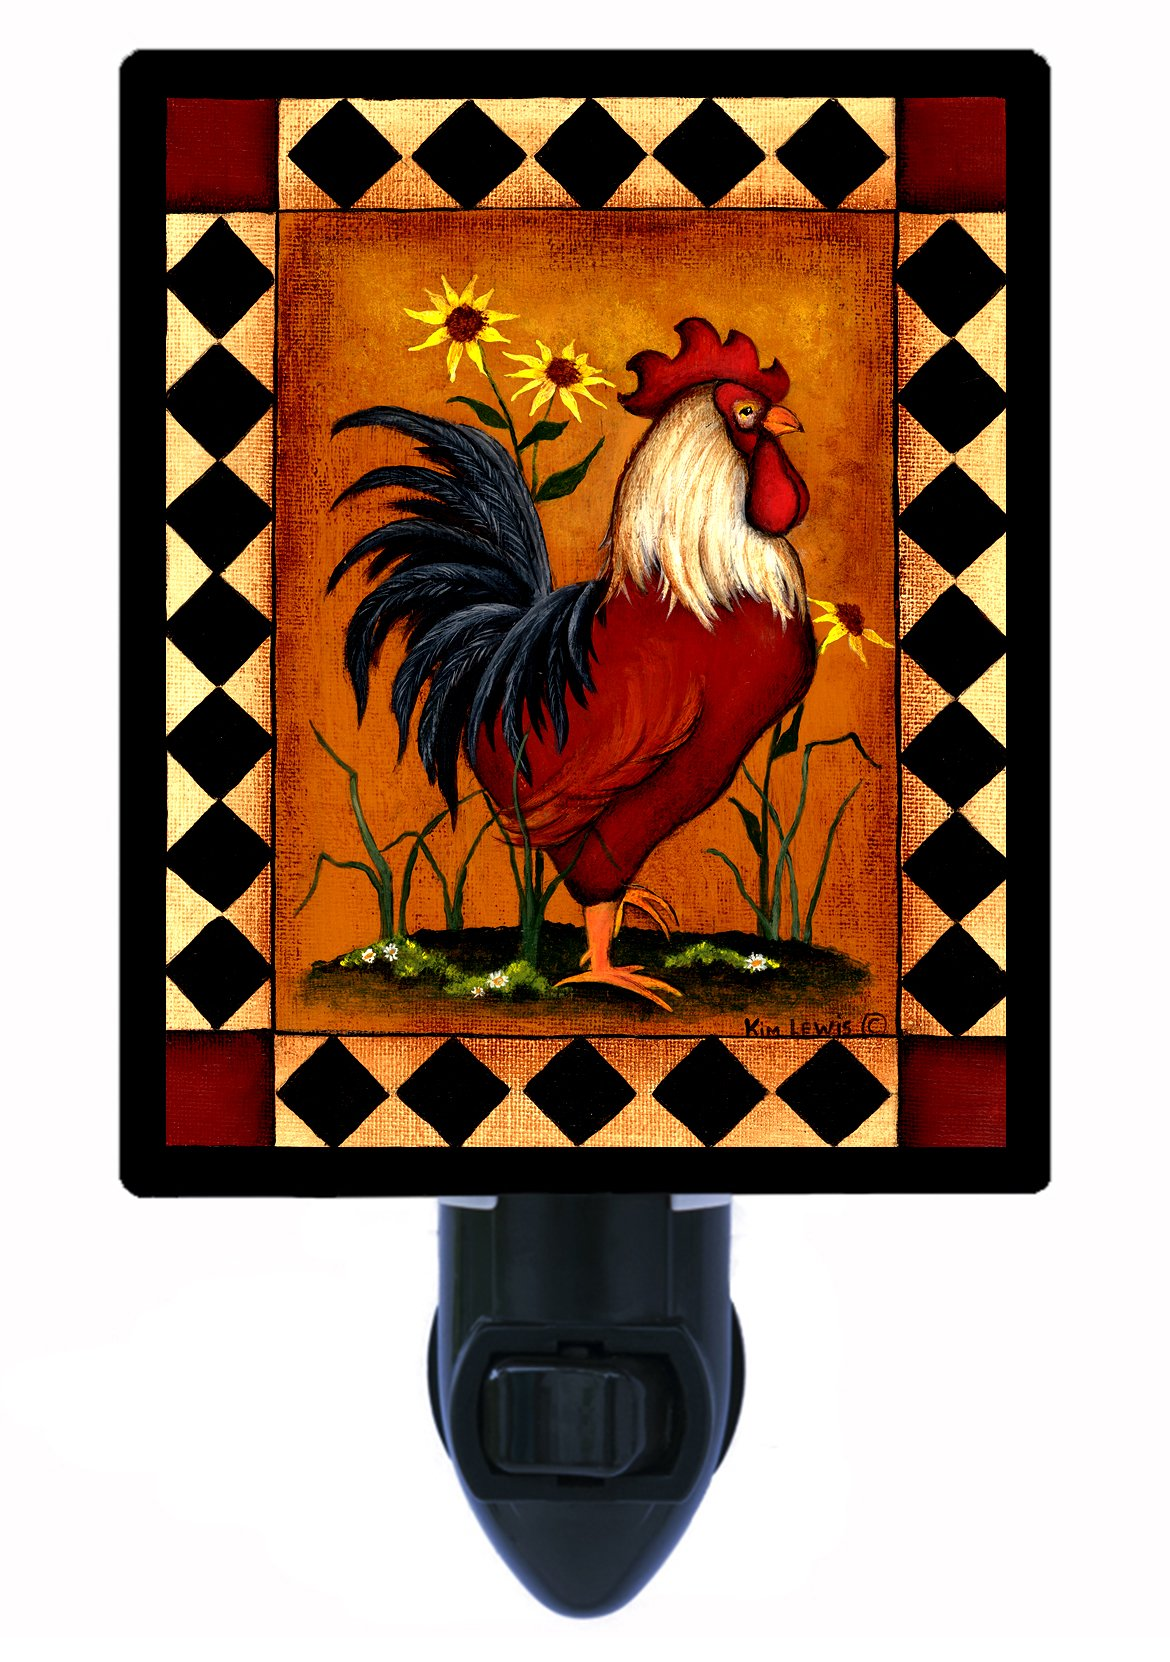 Country Kitchen Night Light - Red Rooster - LED NIGHT LIGHT